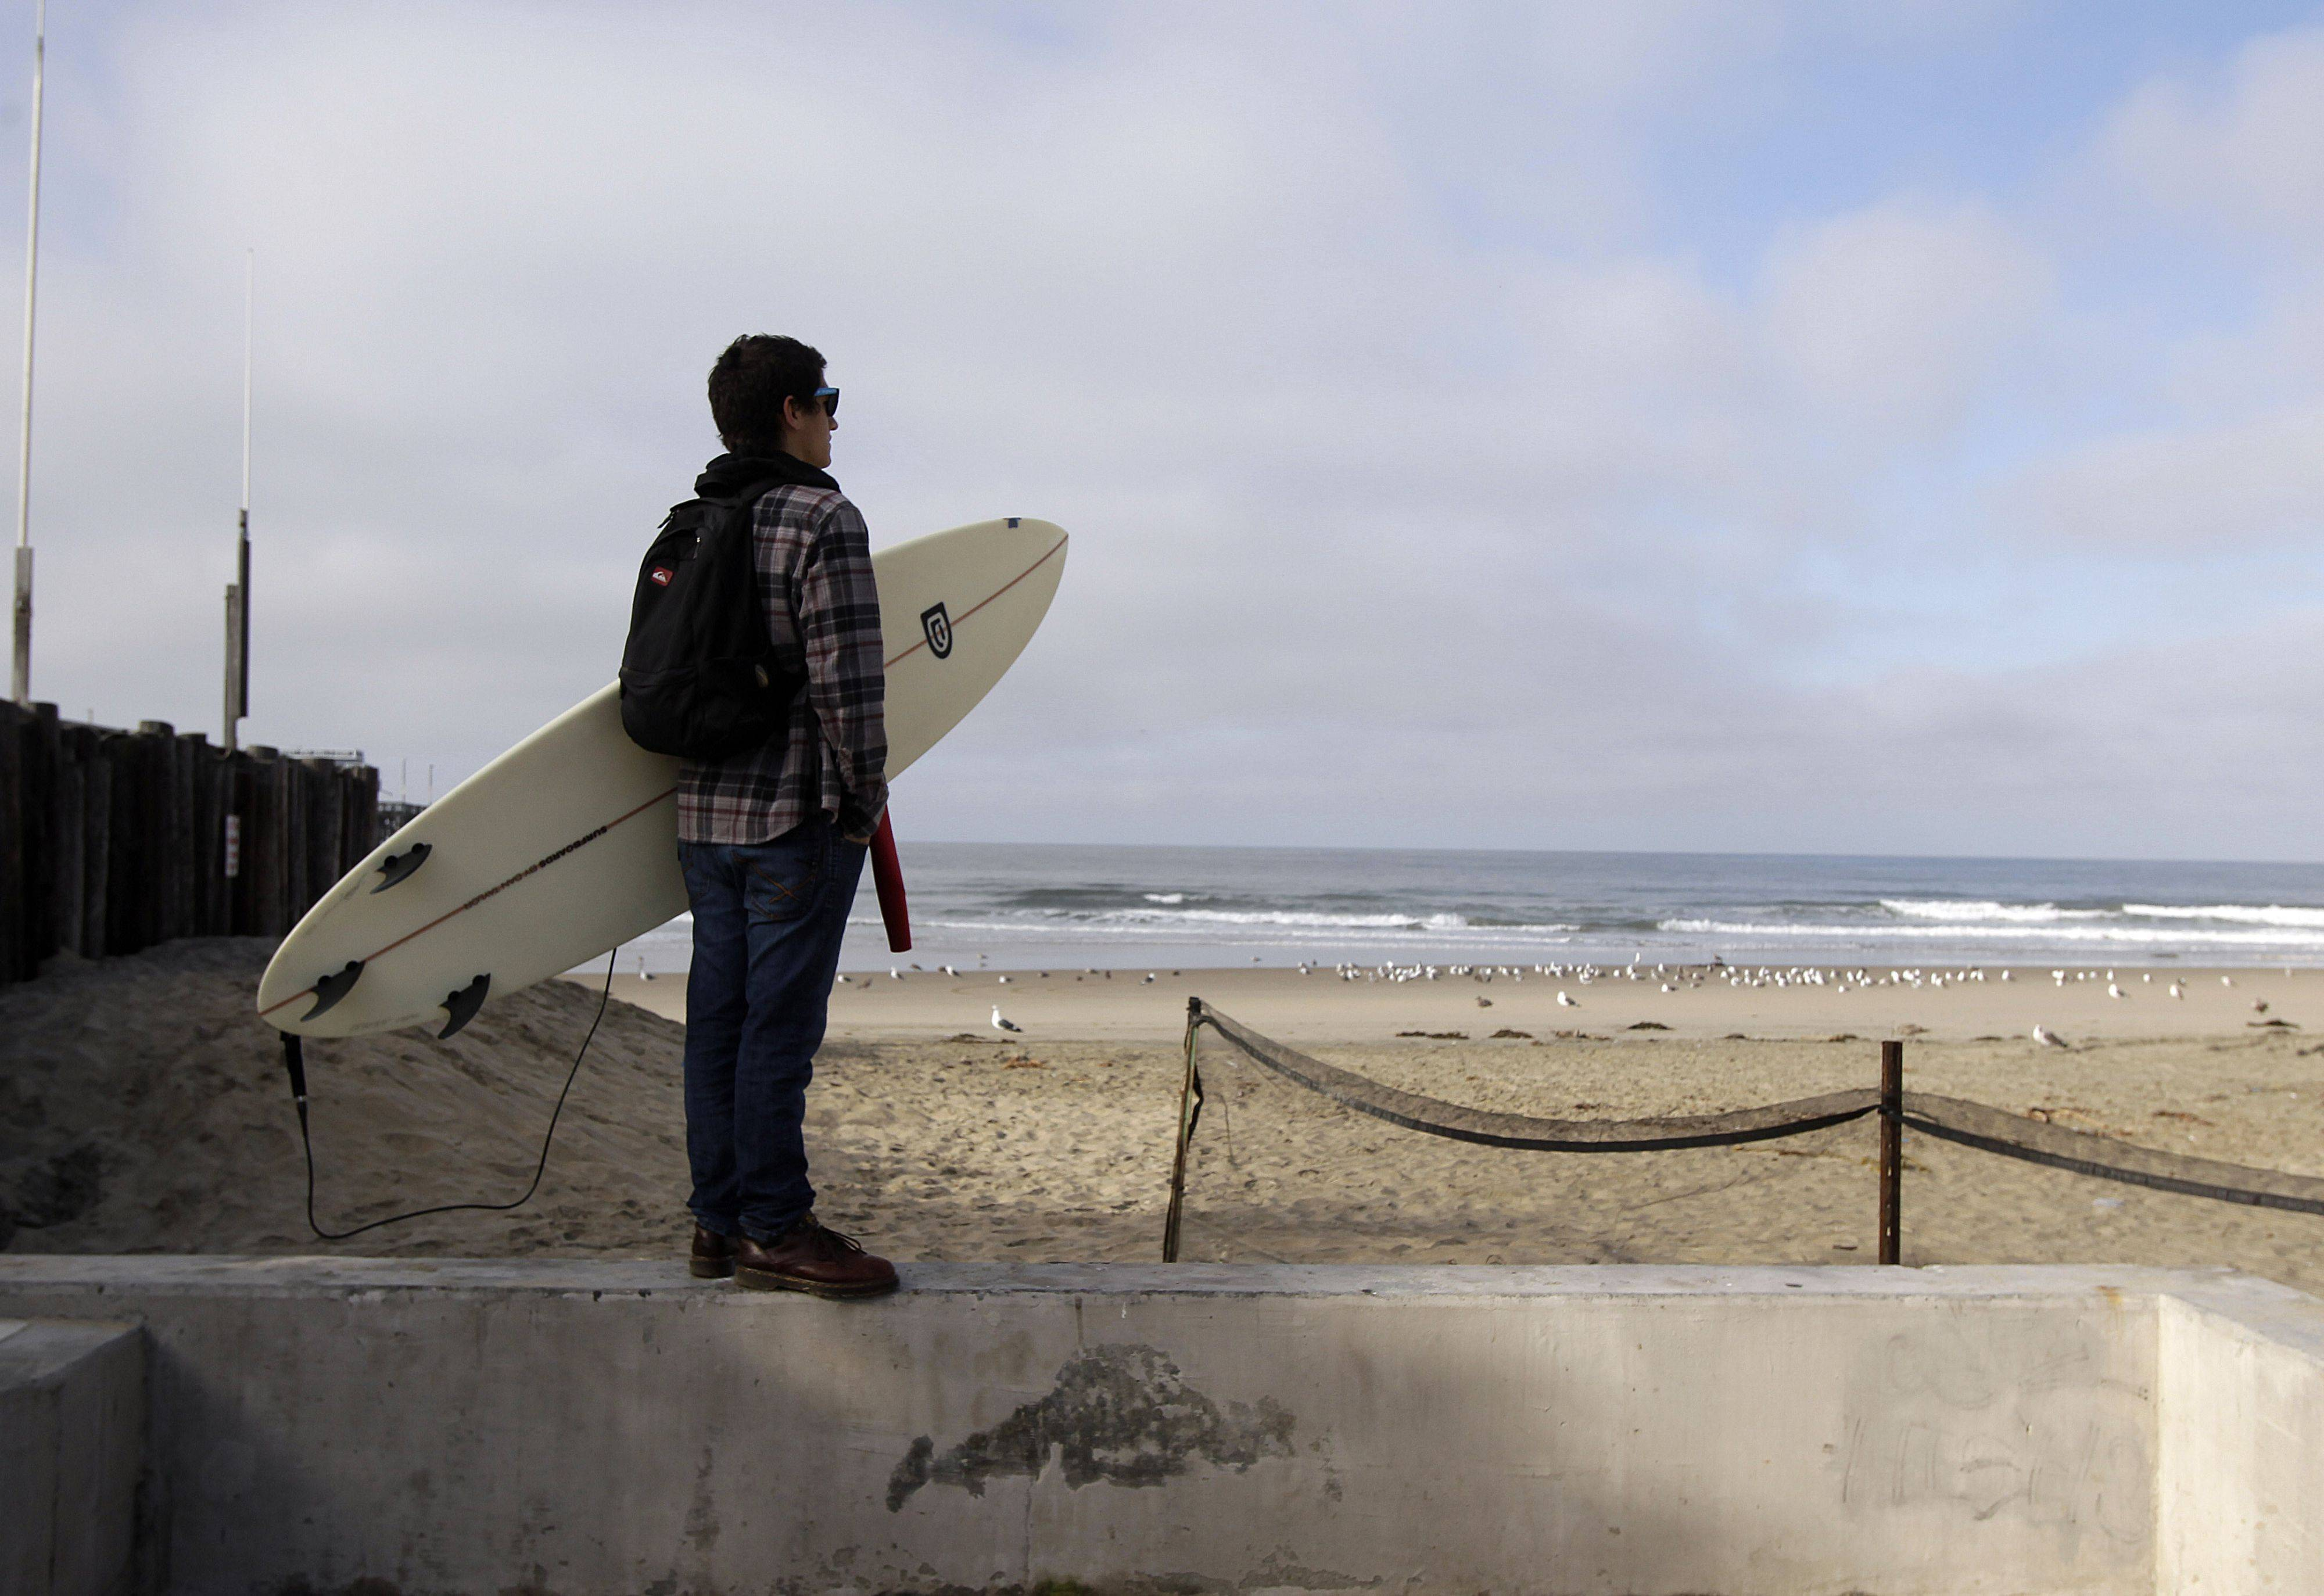 Mark Fontes, of Costa Mesa, Calif., holds his board while watching waves on the Balboa Peninsula in Newport Beach, Calif., Friday, March 11, 2011. An 8.9-magnitude earthquake struck Japan sparking tsunami warnings as far away as the United States' west coast.